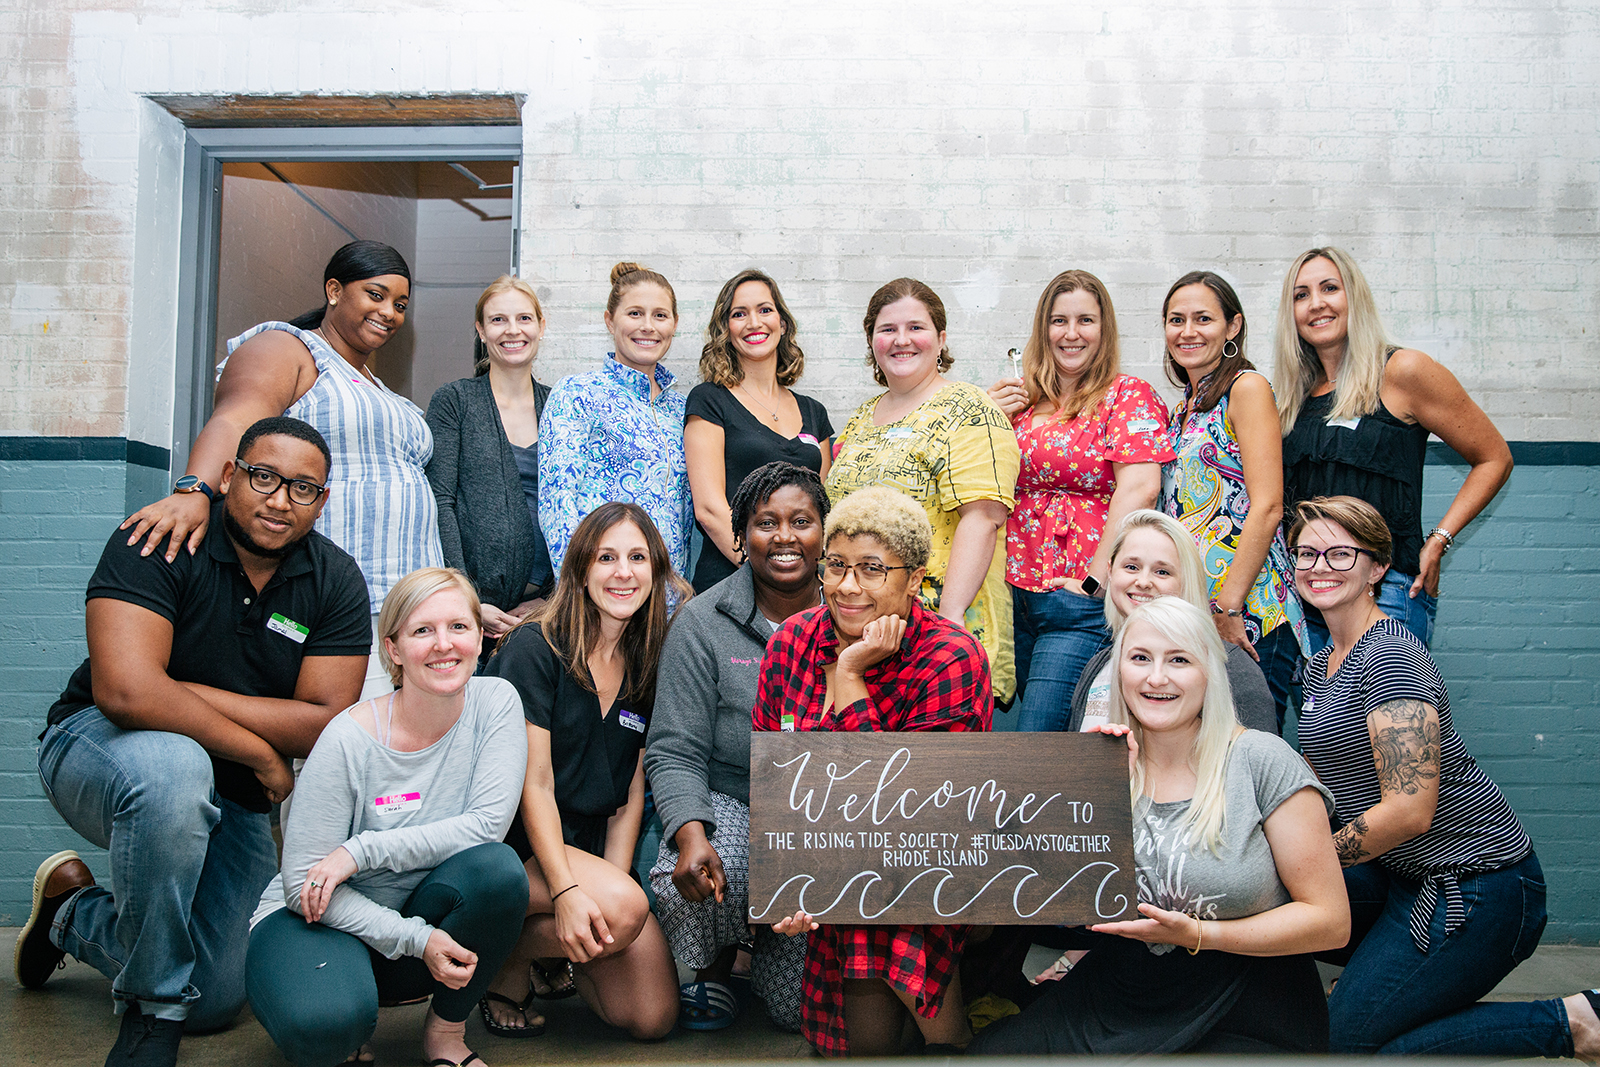 Our community and participants in this photo: Jamal and Lashana (  Jamal and Lashana Photography ), Sarah ( Sarah Zollo Portraits ), Mary (  Key Moment Films, ), Brittney (  Brittany Leclerc Photography ), Jess (  Limitless Beauty by Jess Abreu ), Morayo ( Piper Brown Photography ), Christine ( eisley images ), Victoria ( Victoria Lyn Photography ) ,Kerri (Life Coach), Mallory ( Photography by Mallory )